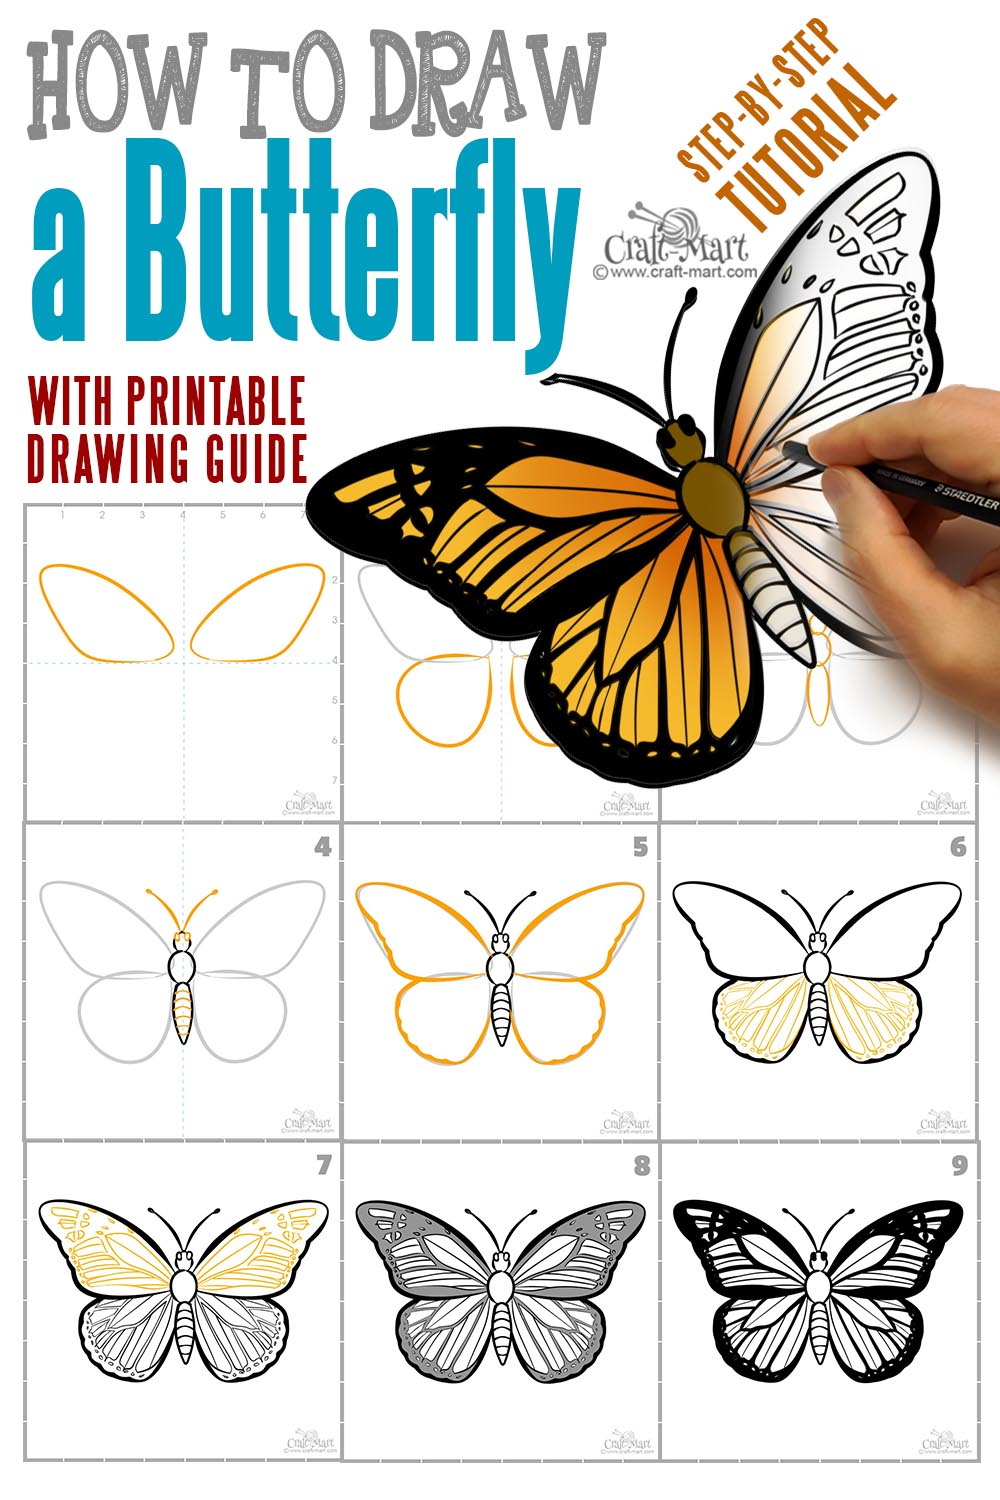 step-by-step butterfly drawing tutorial with printable guide